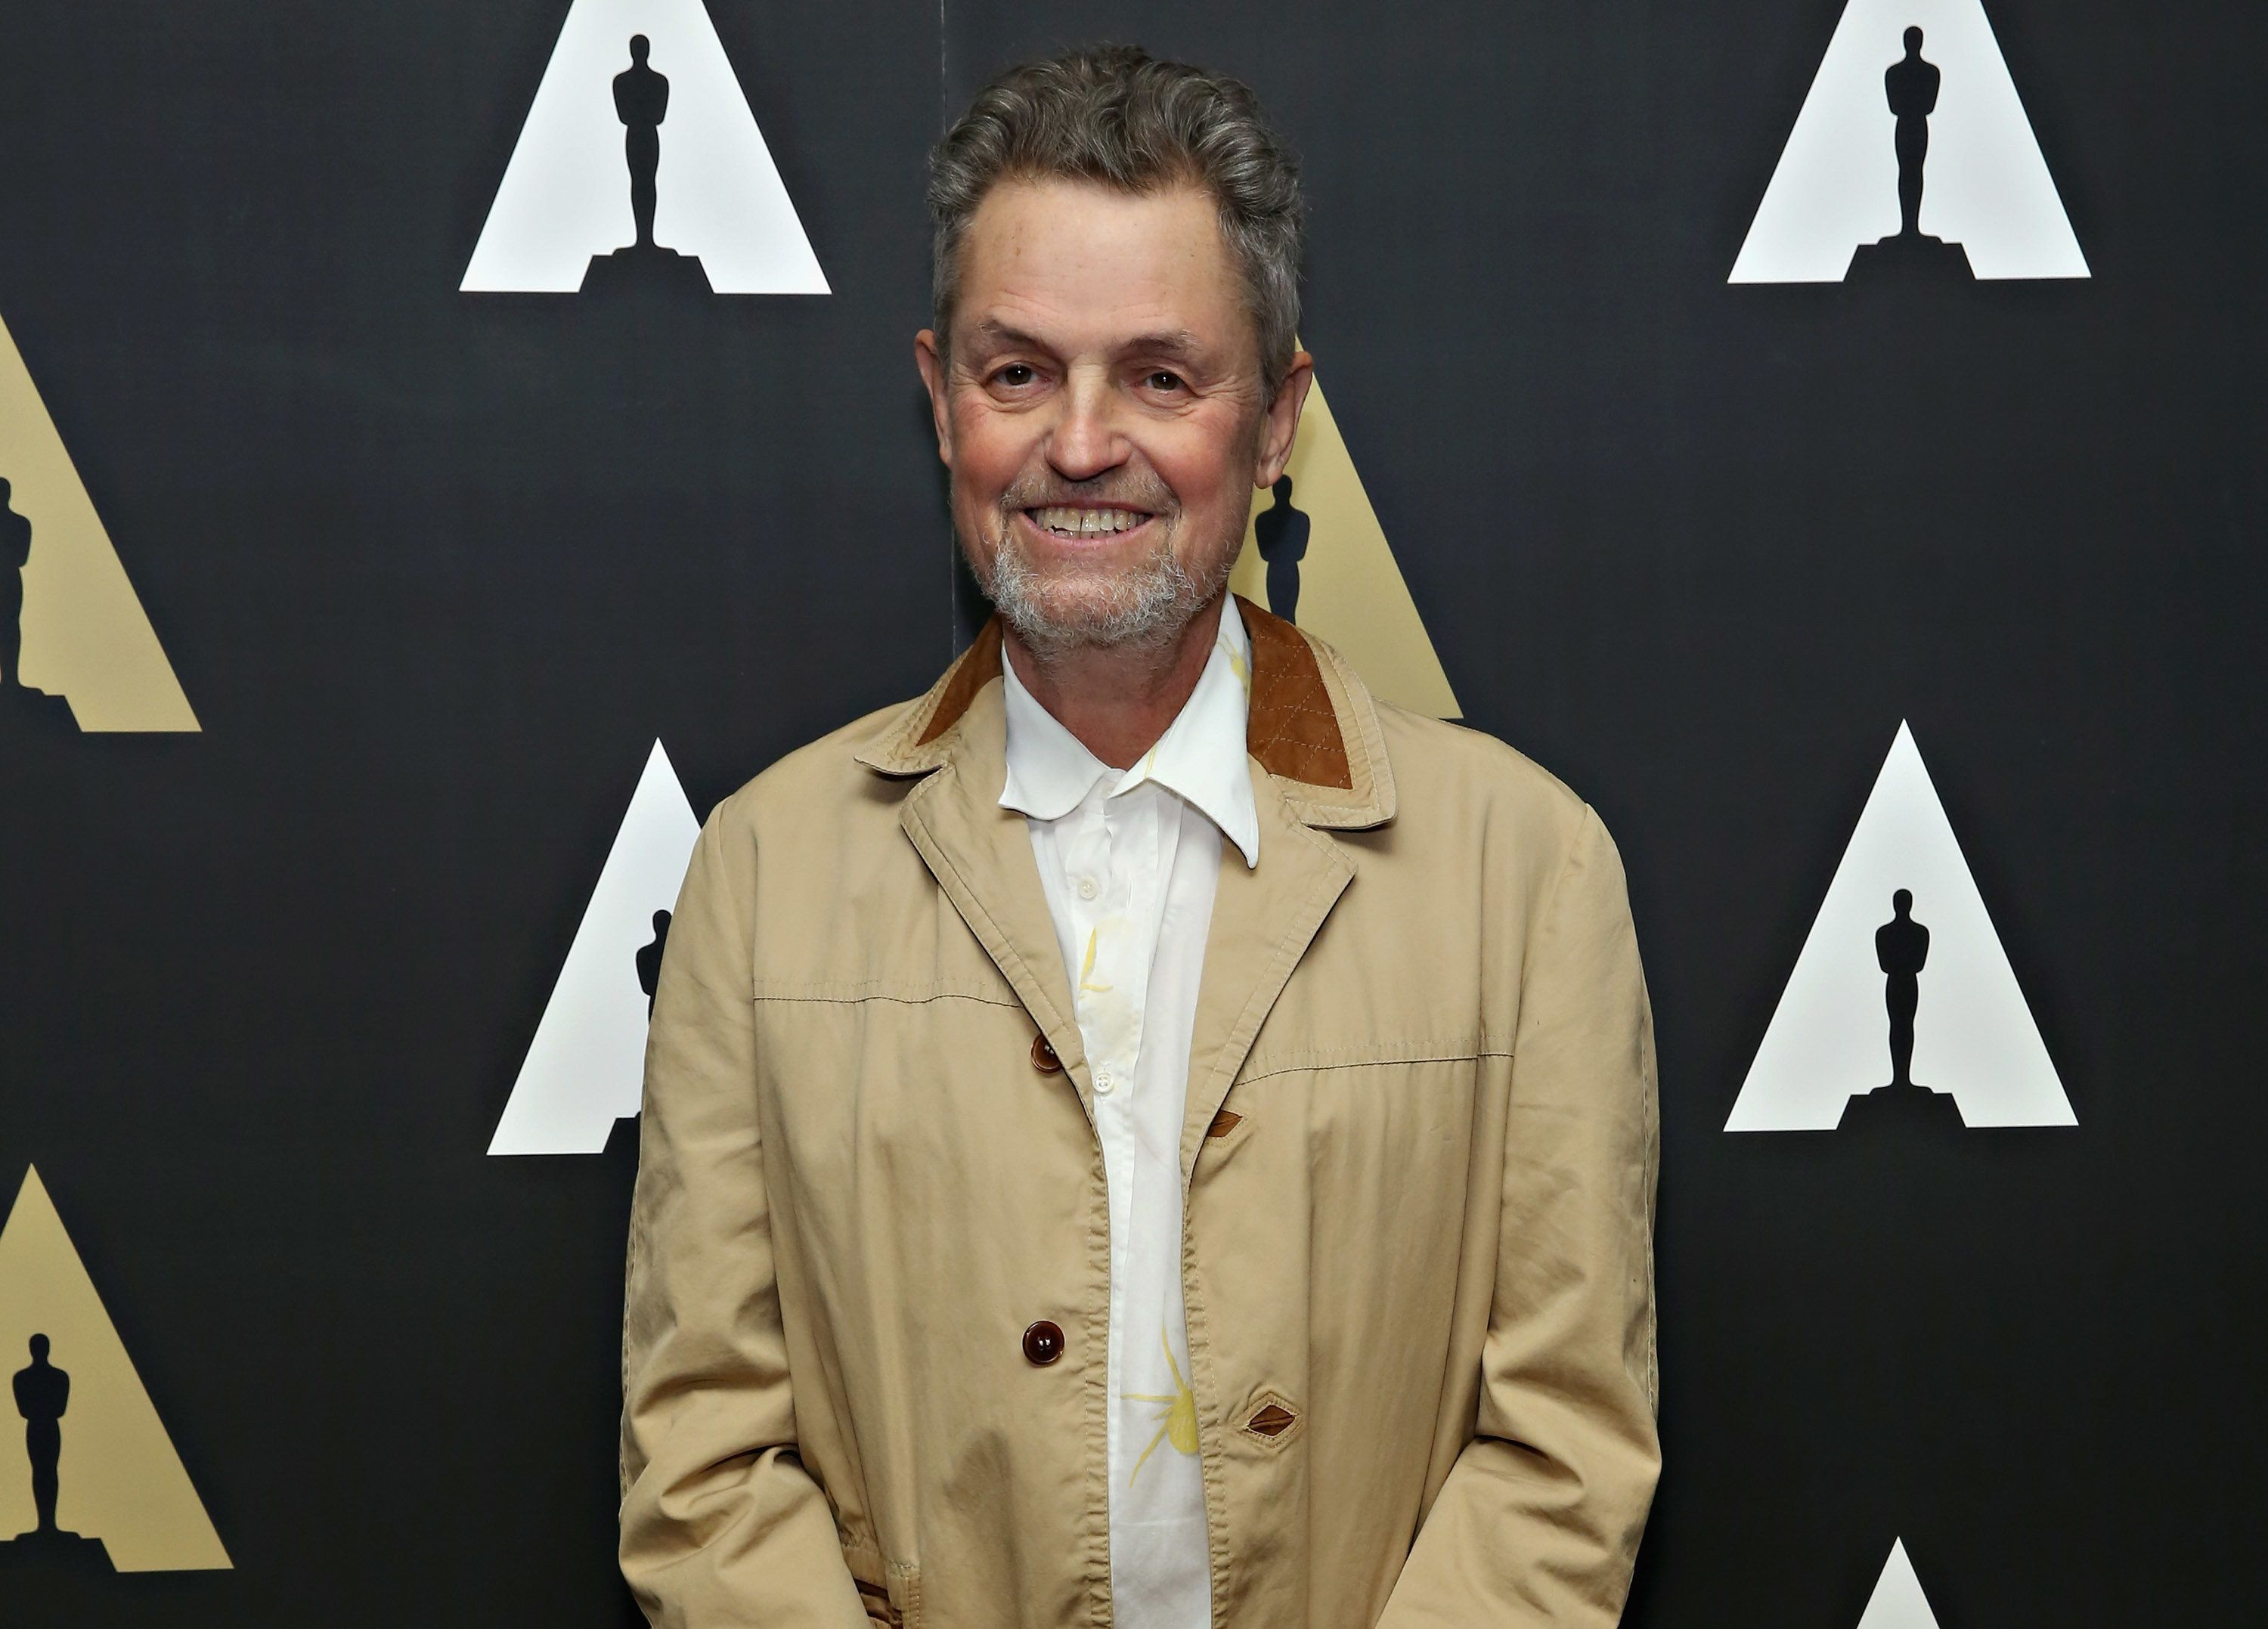 NEW YORK, NY - APRIL 20:  Director Jonathan Demme attends The Academy Museum presents 25th Anniversary event of 'Silence Of The Lambs' at The Museum of Modern Art on April 20, 2016 in New York City.  (Photo by Cindy Ord/Getty Images)